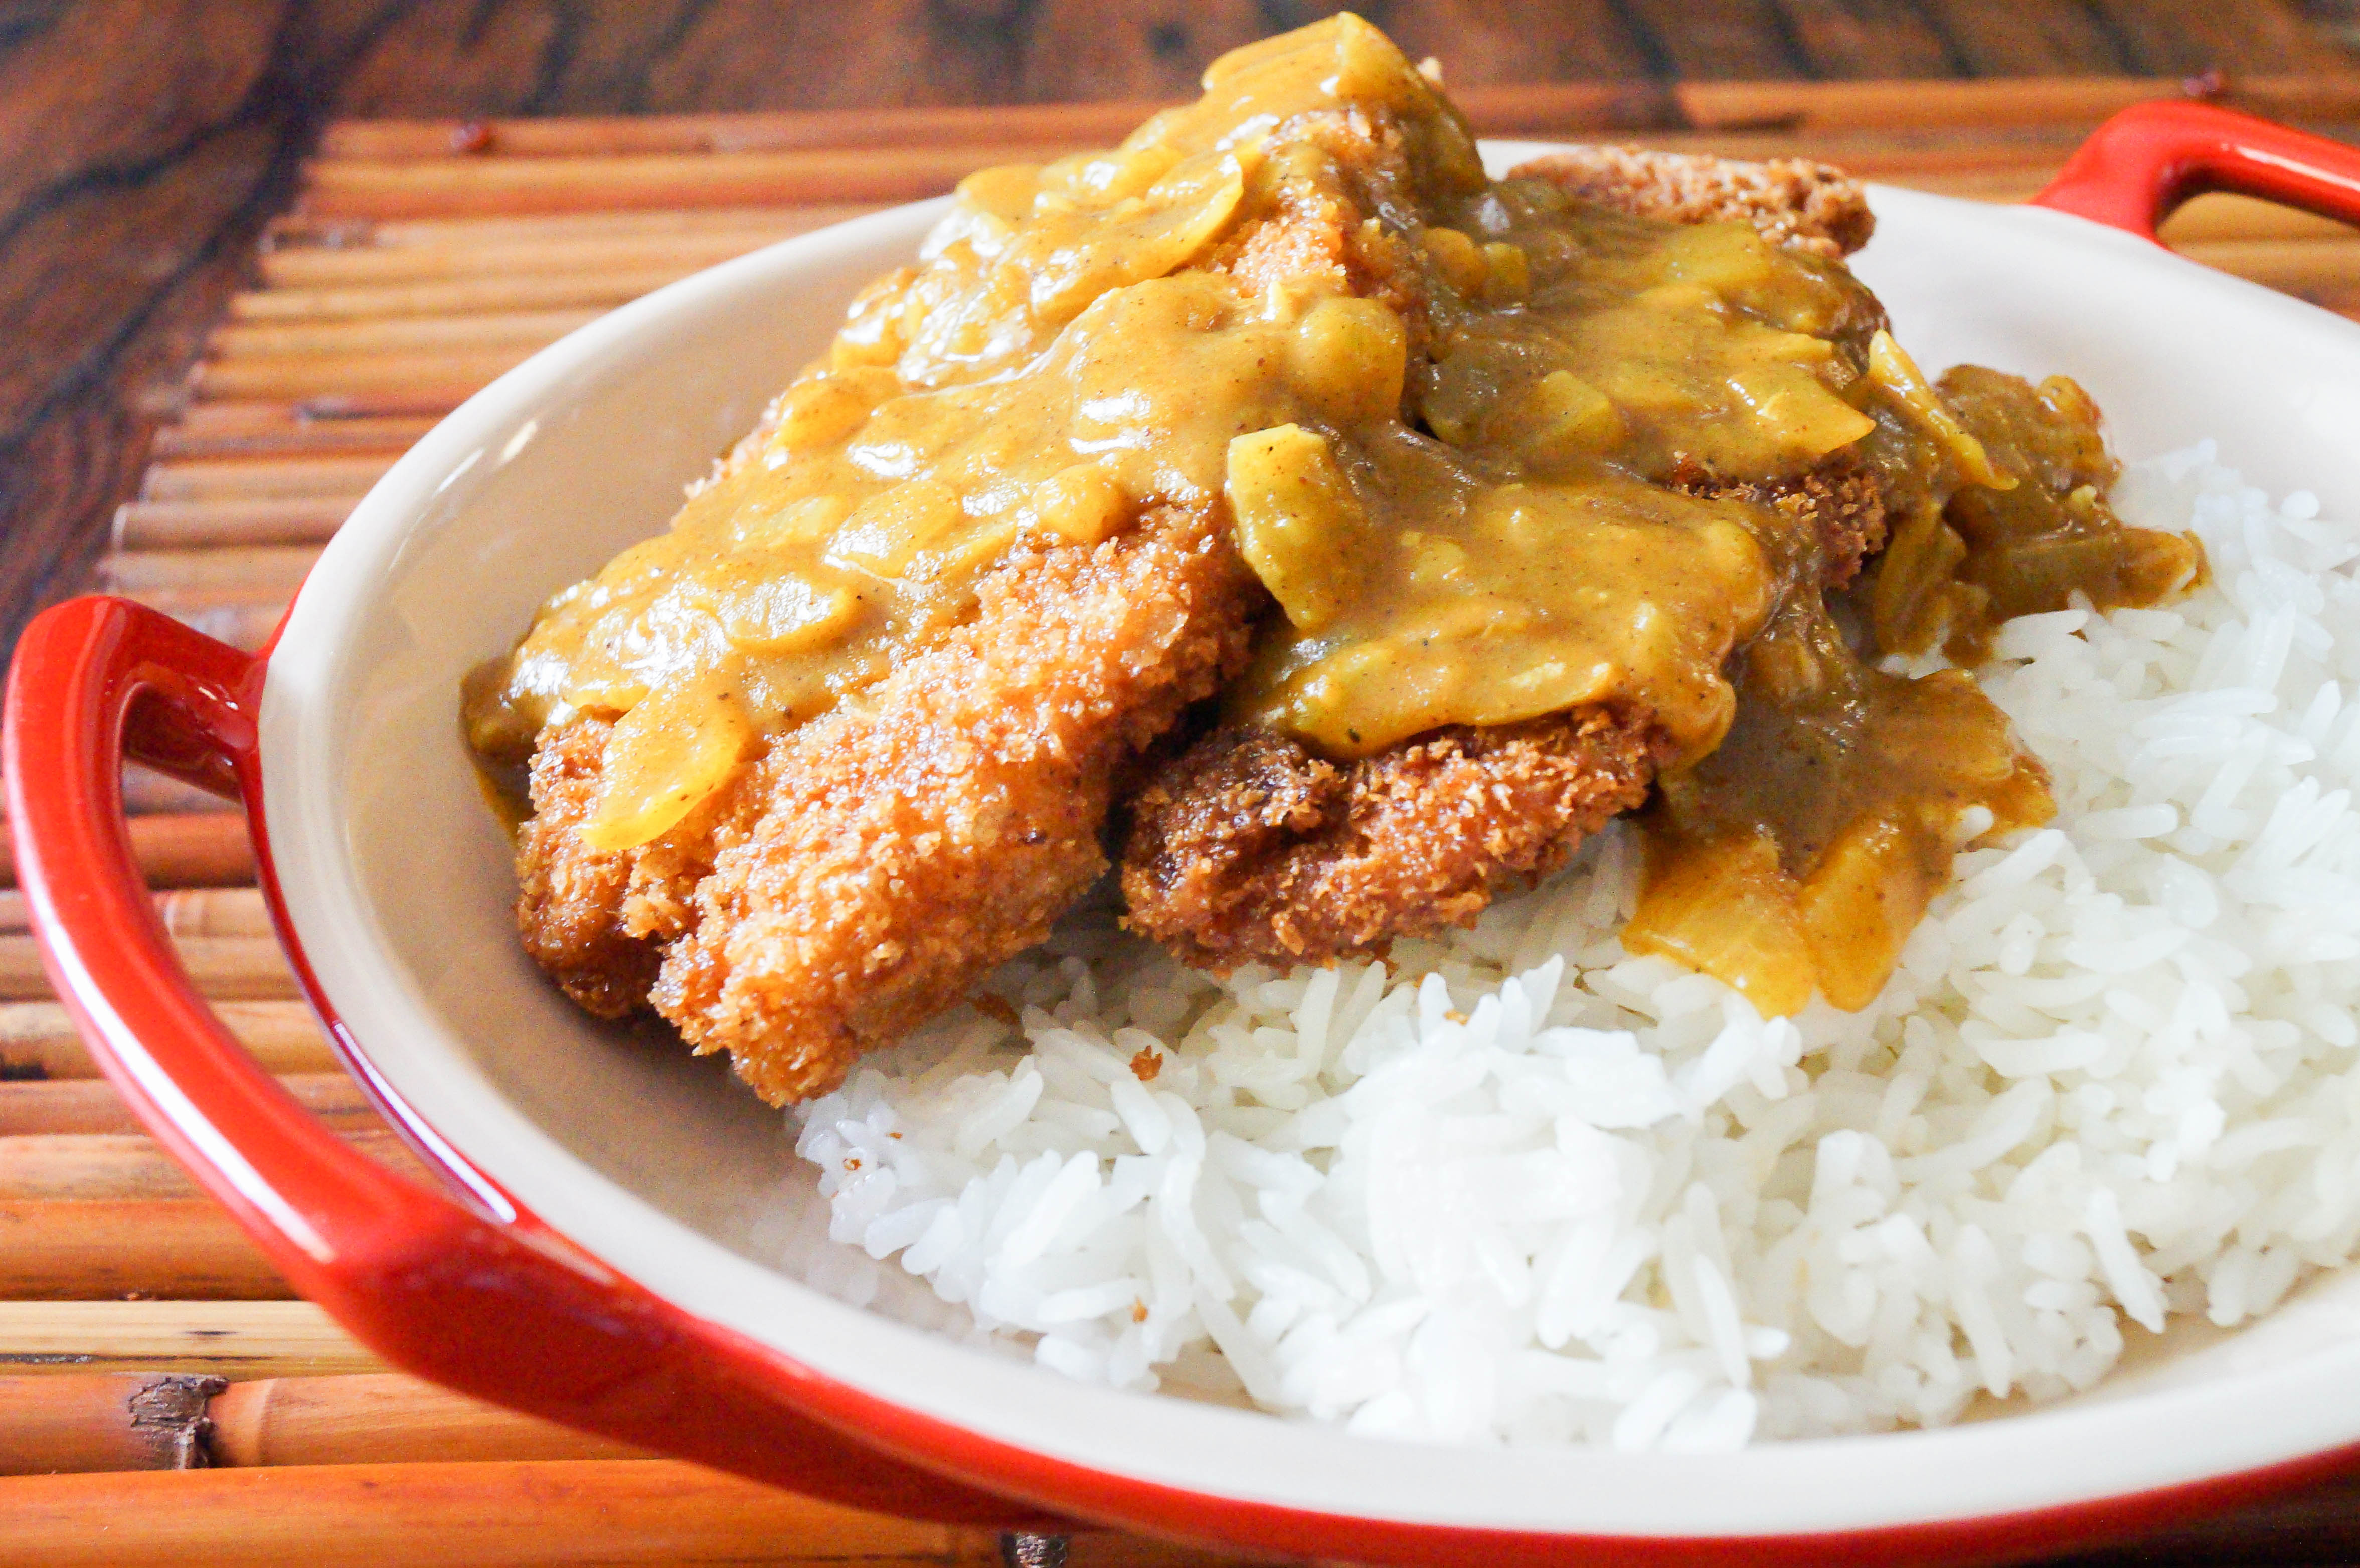 Torikatsu with Coconut Curry Sauce (Japanese Fried Chicken Cutlet)